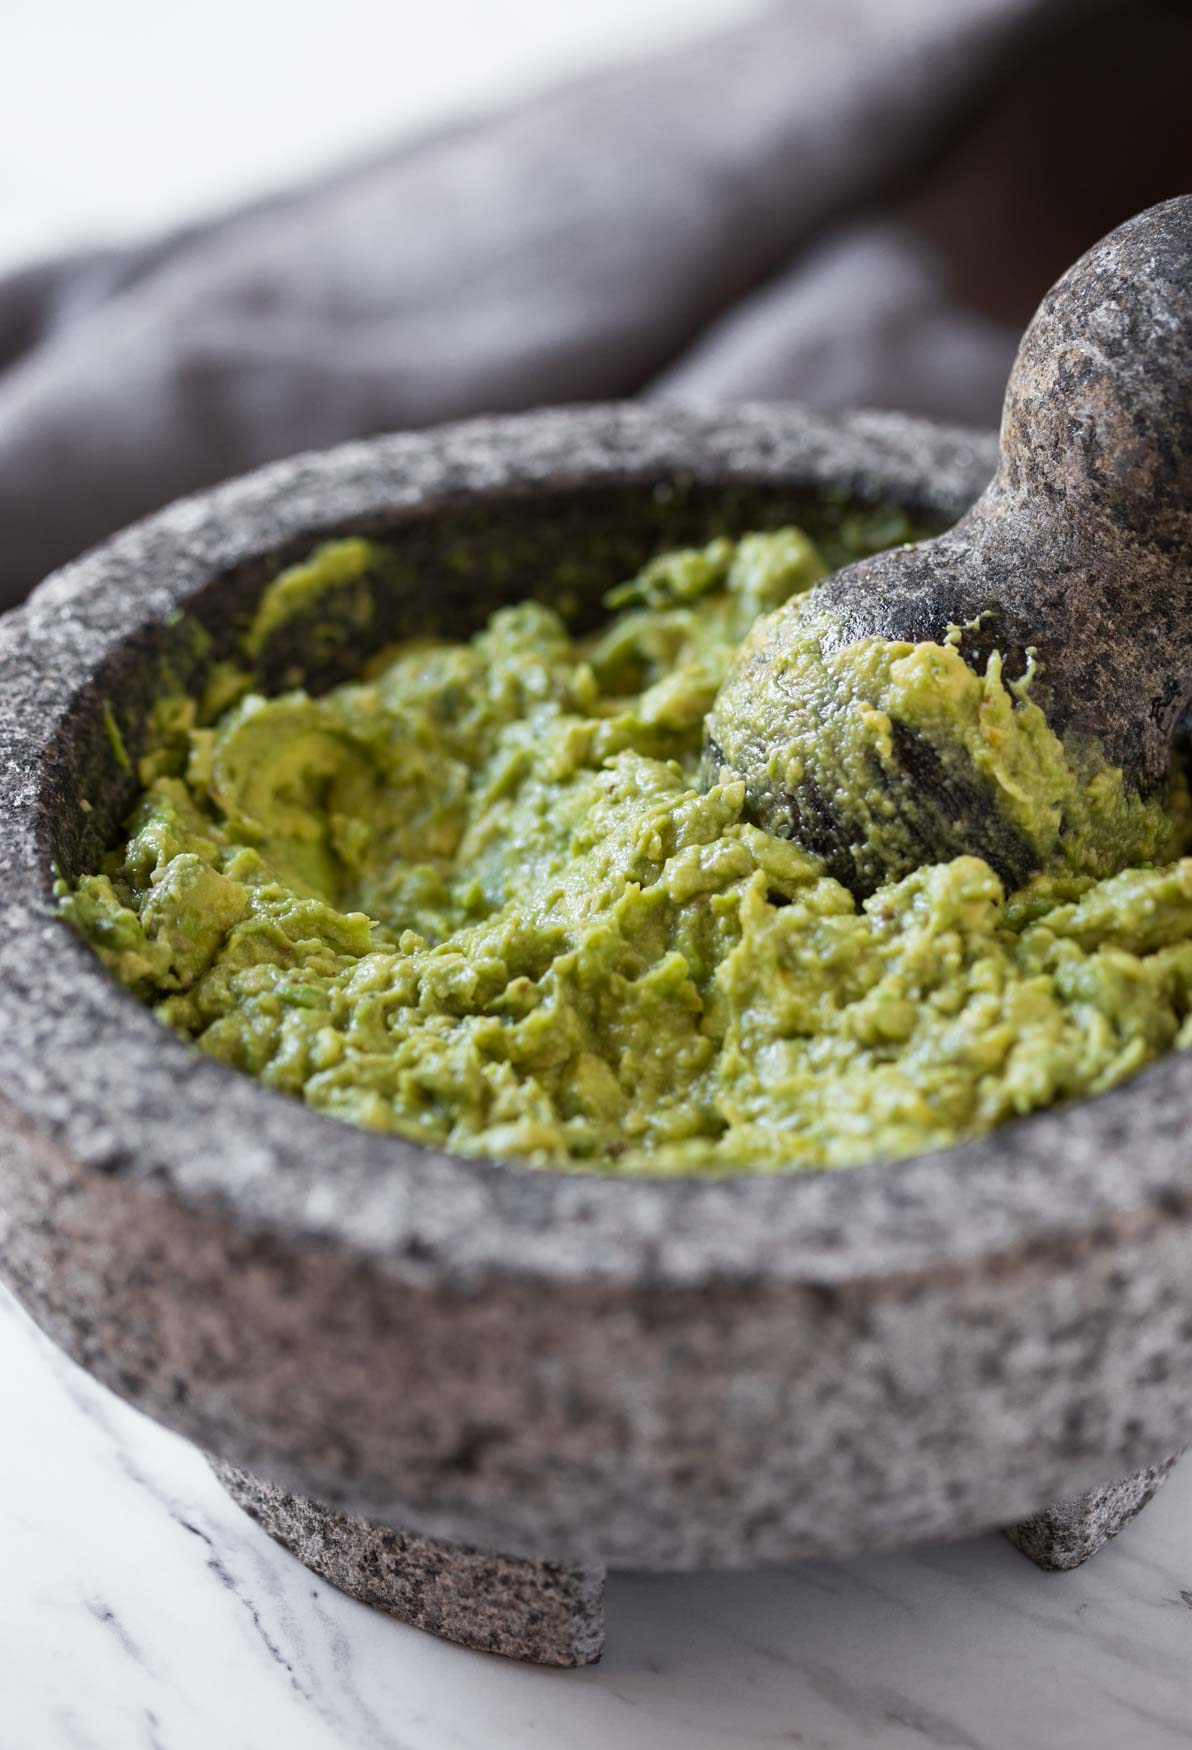 Mashed chunky avocados in the molcajete for making fresh and healthy guacamole